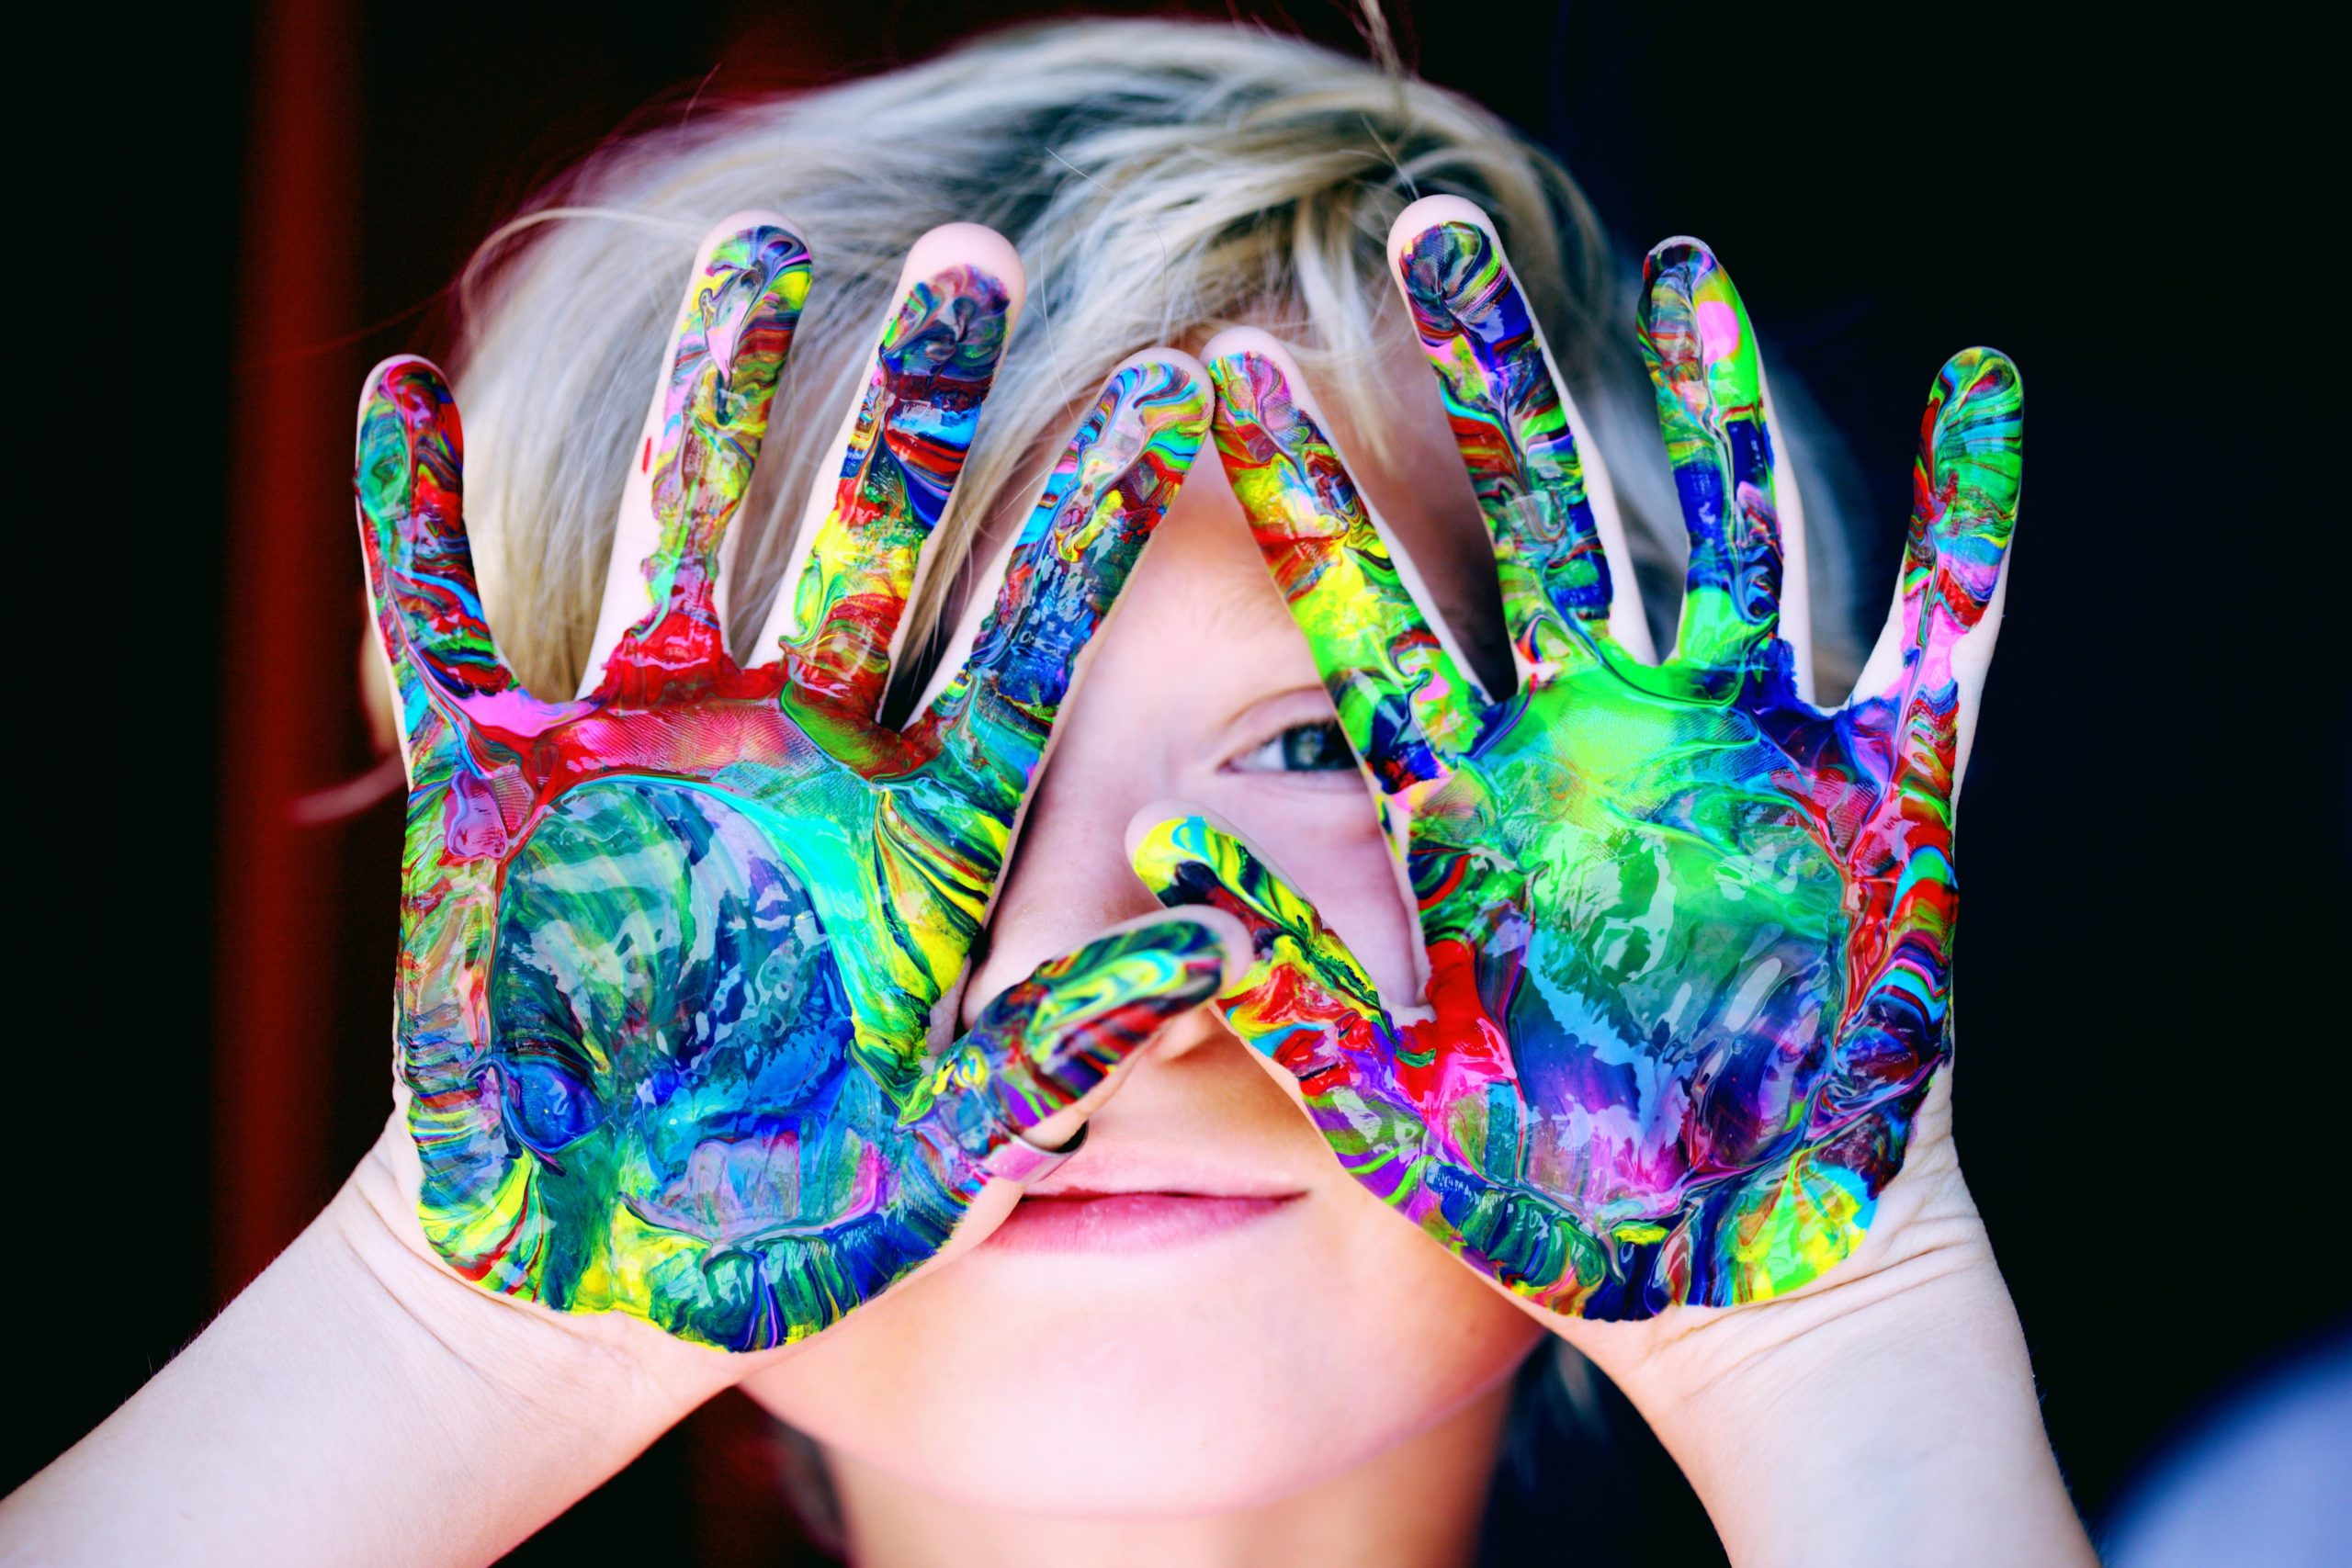 stress management kid with rainbow paint on hands